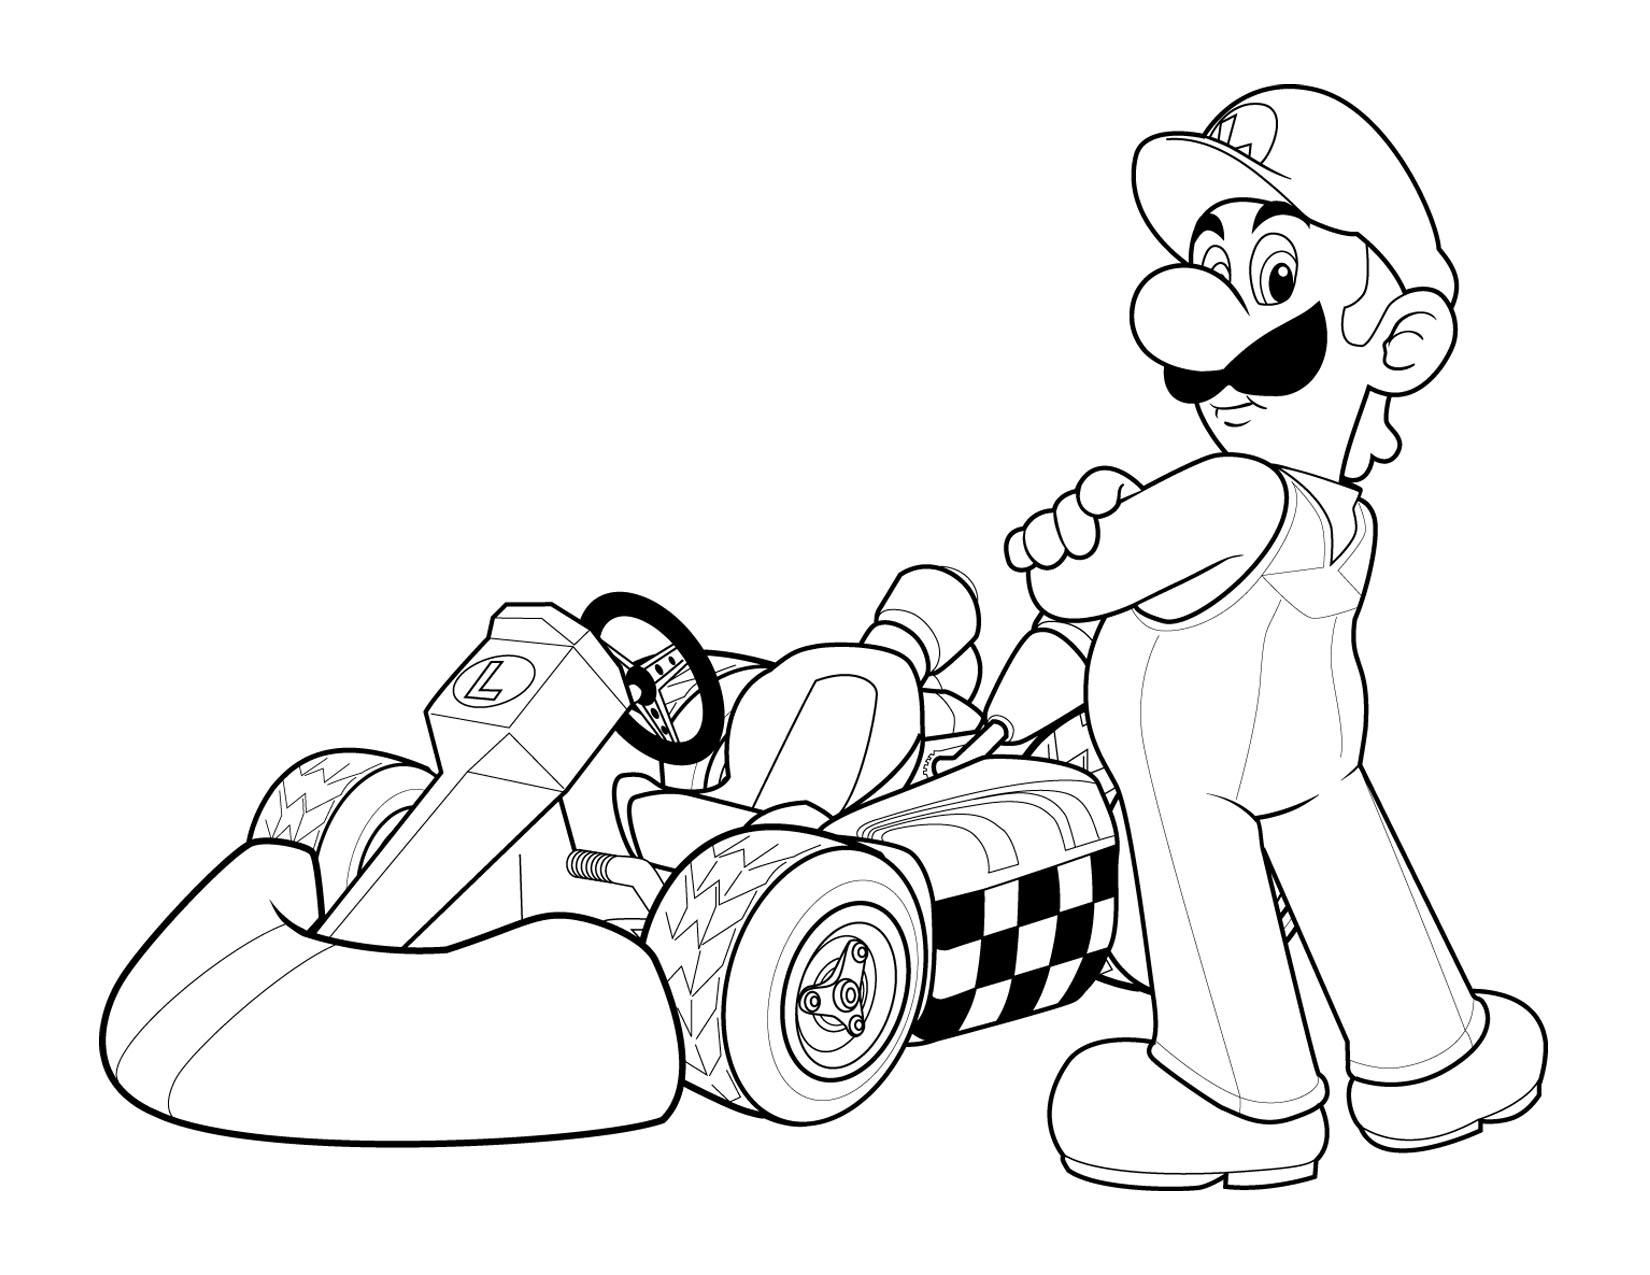 Clip Art Mario Bros Printable Coloring Pages 1000 images about coloring book on pinterest super mario bros and brothers